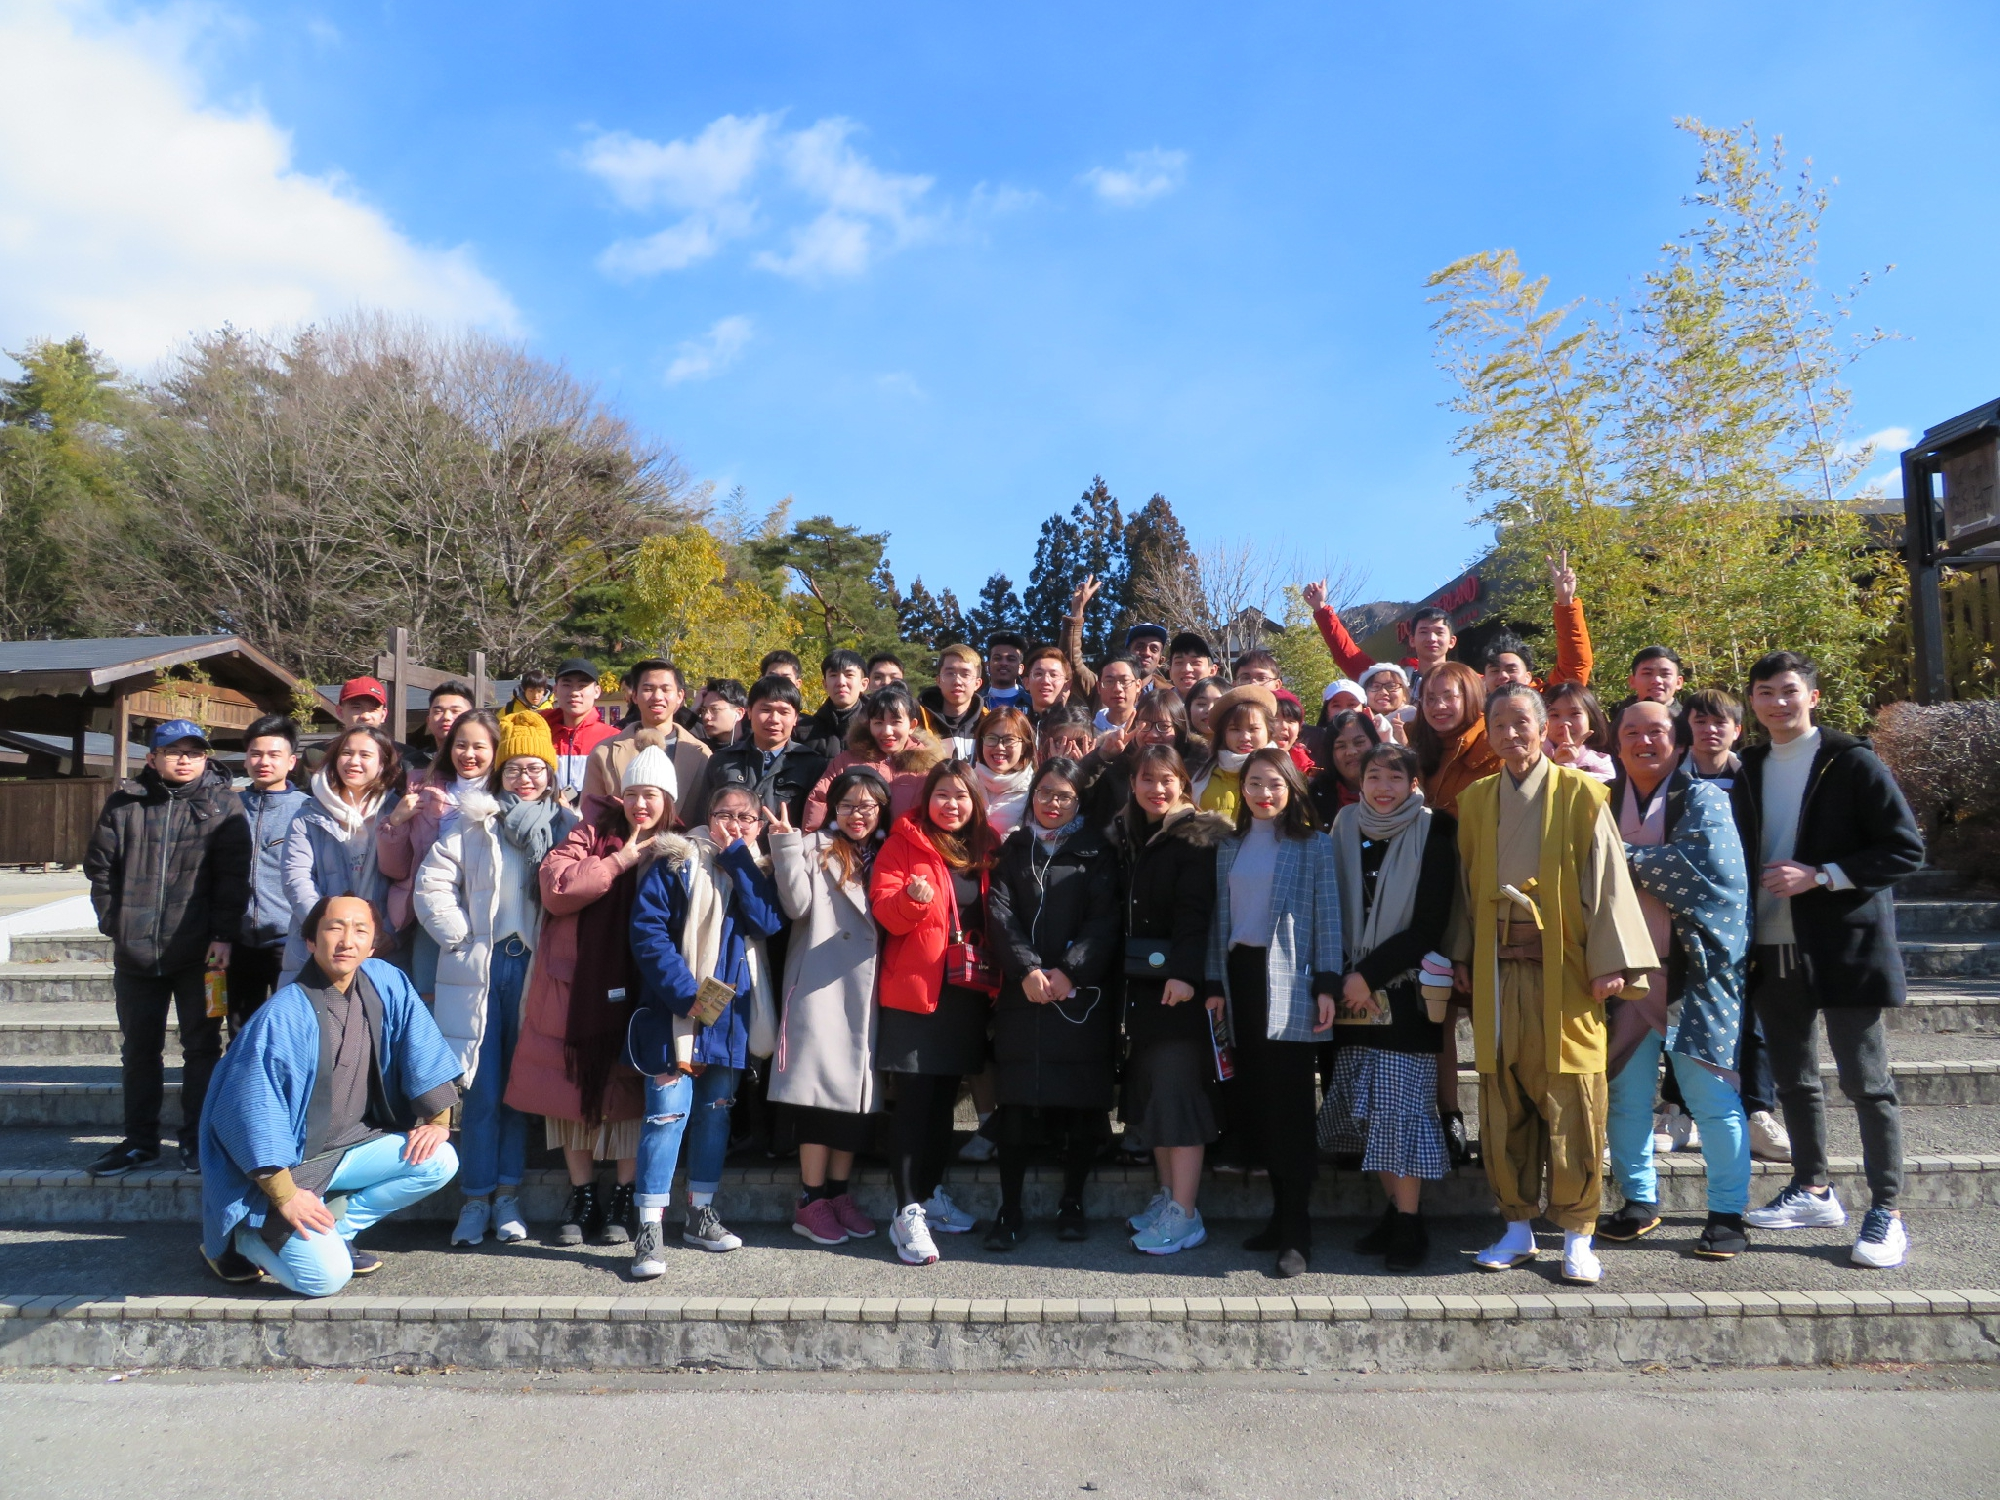 2019/2 一泊旅行に行きました(日光・江戸村)Overnight school trip: We traveled to Nikko and Edo Wonderland